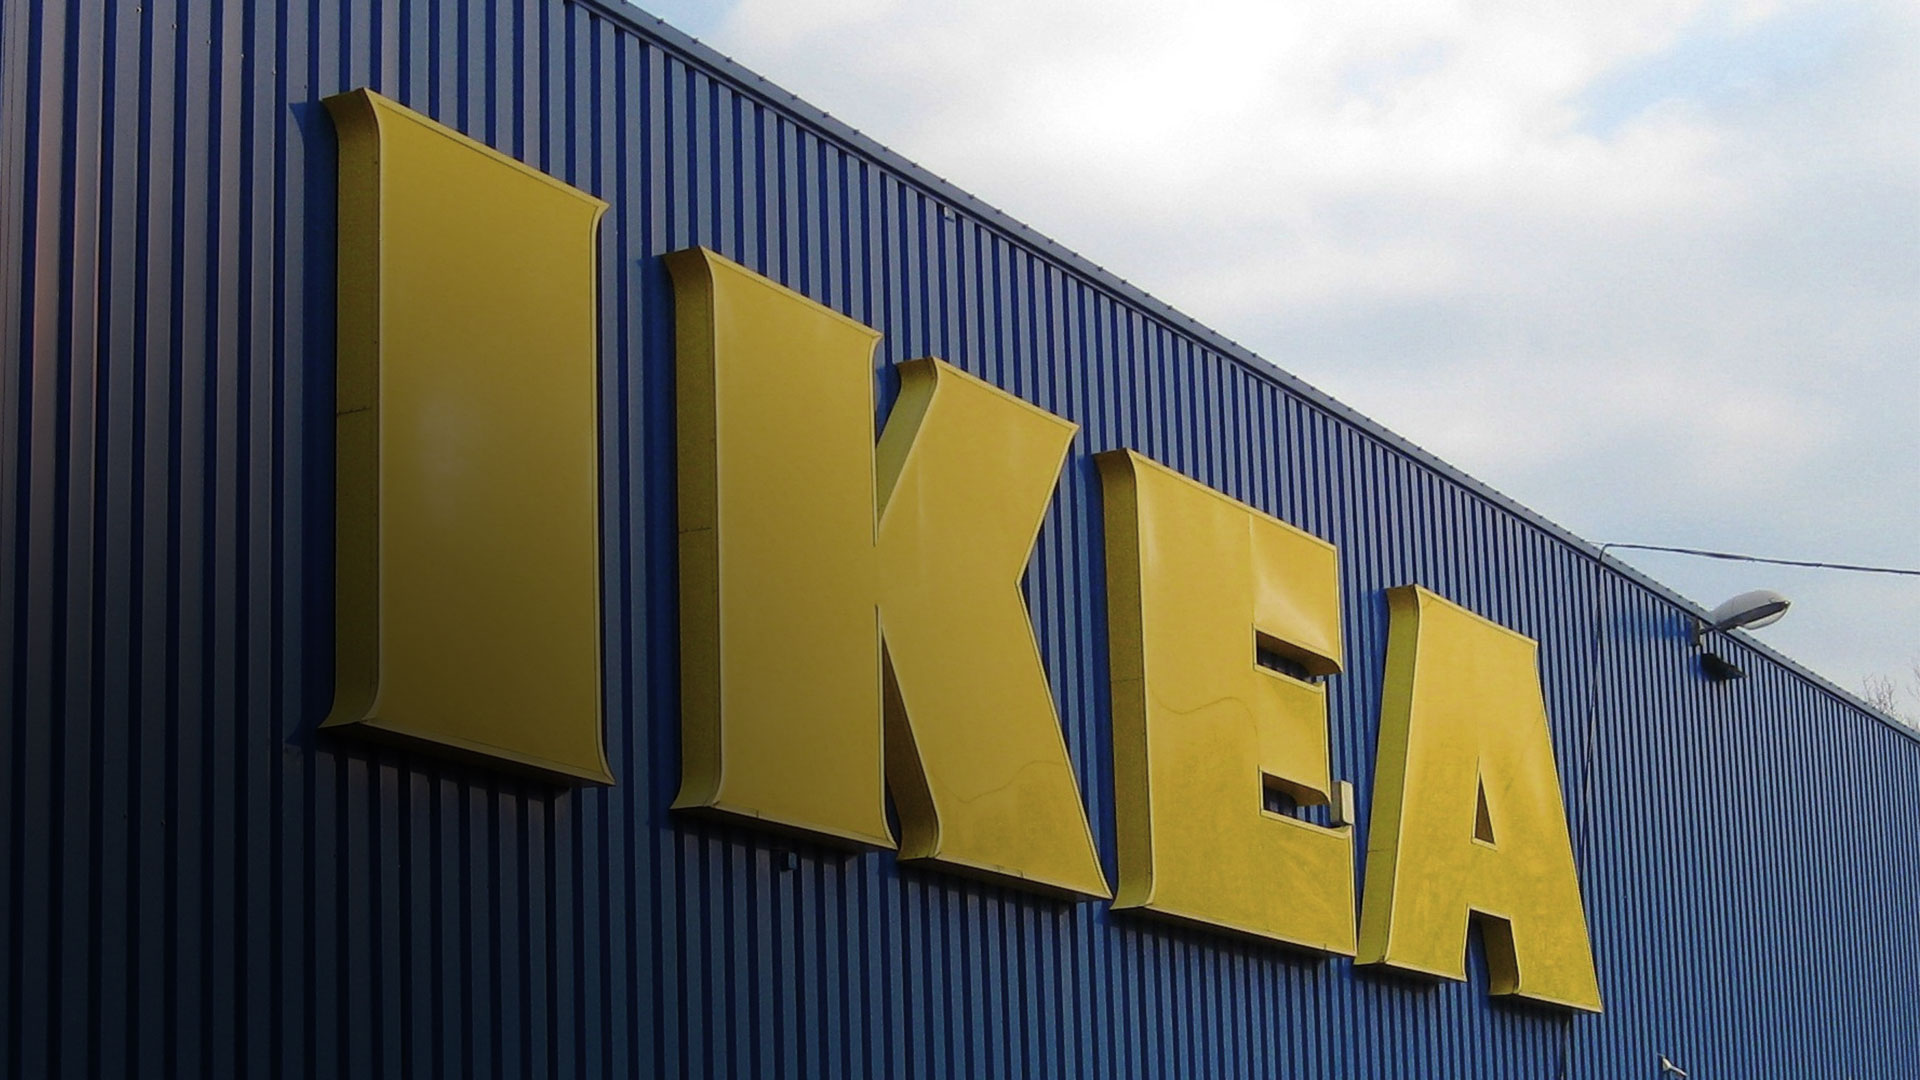 ikeahappyhome